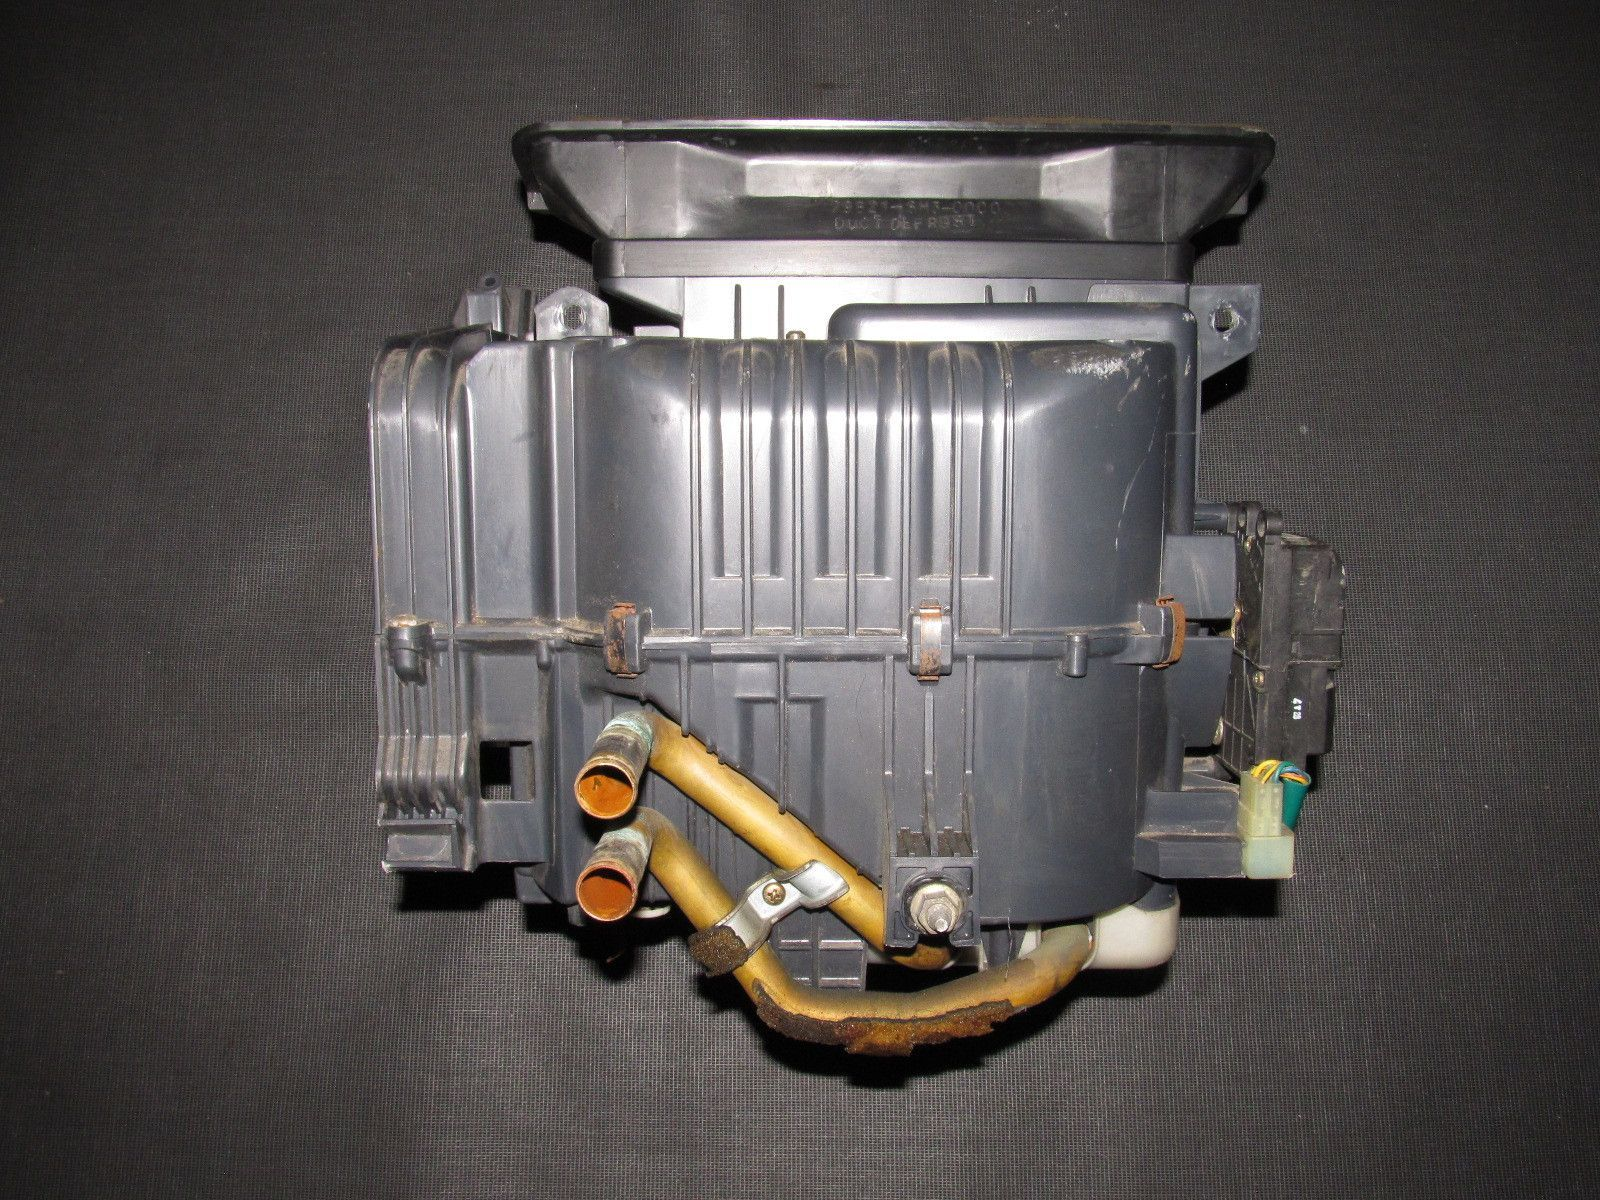 88 89 honda crx oem heater core assembly box [ 1600 x 1200 Pixel ]